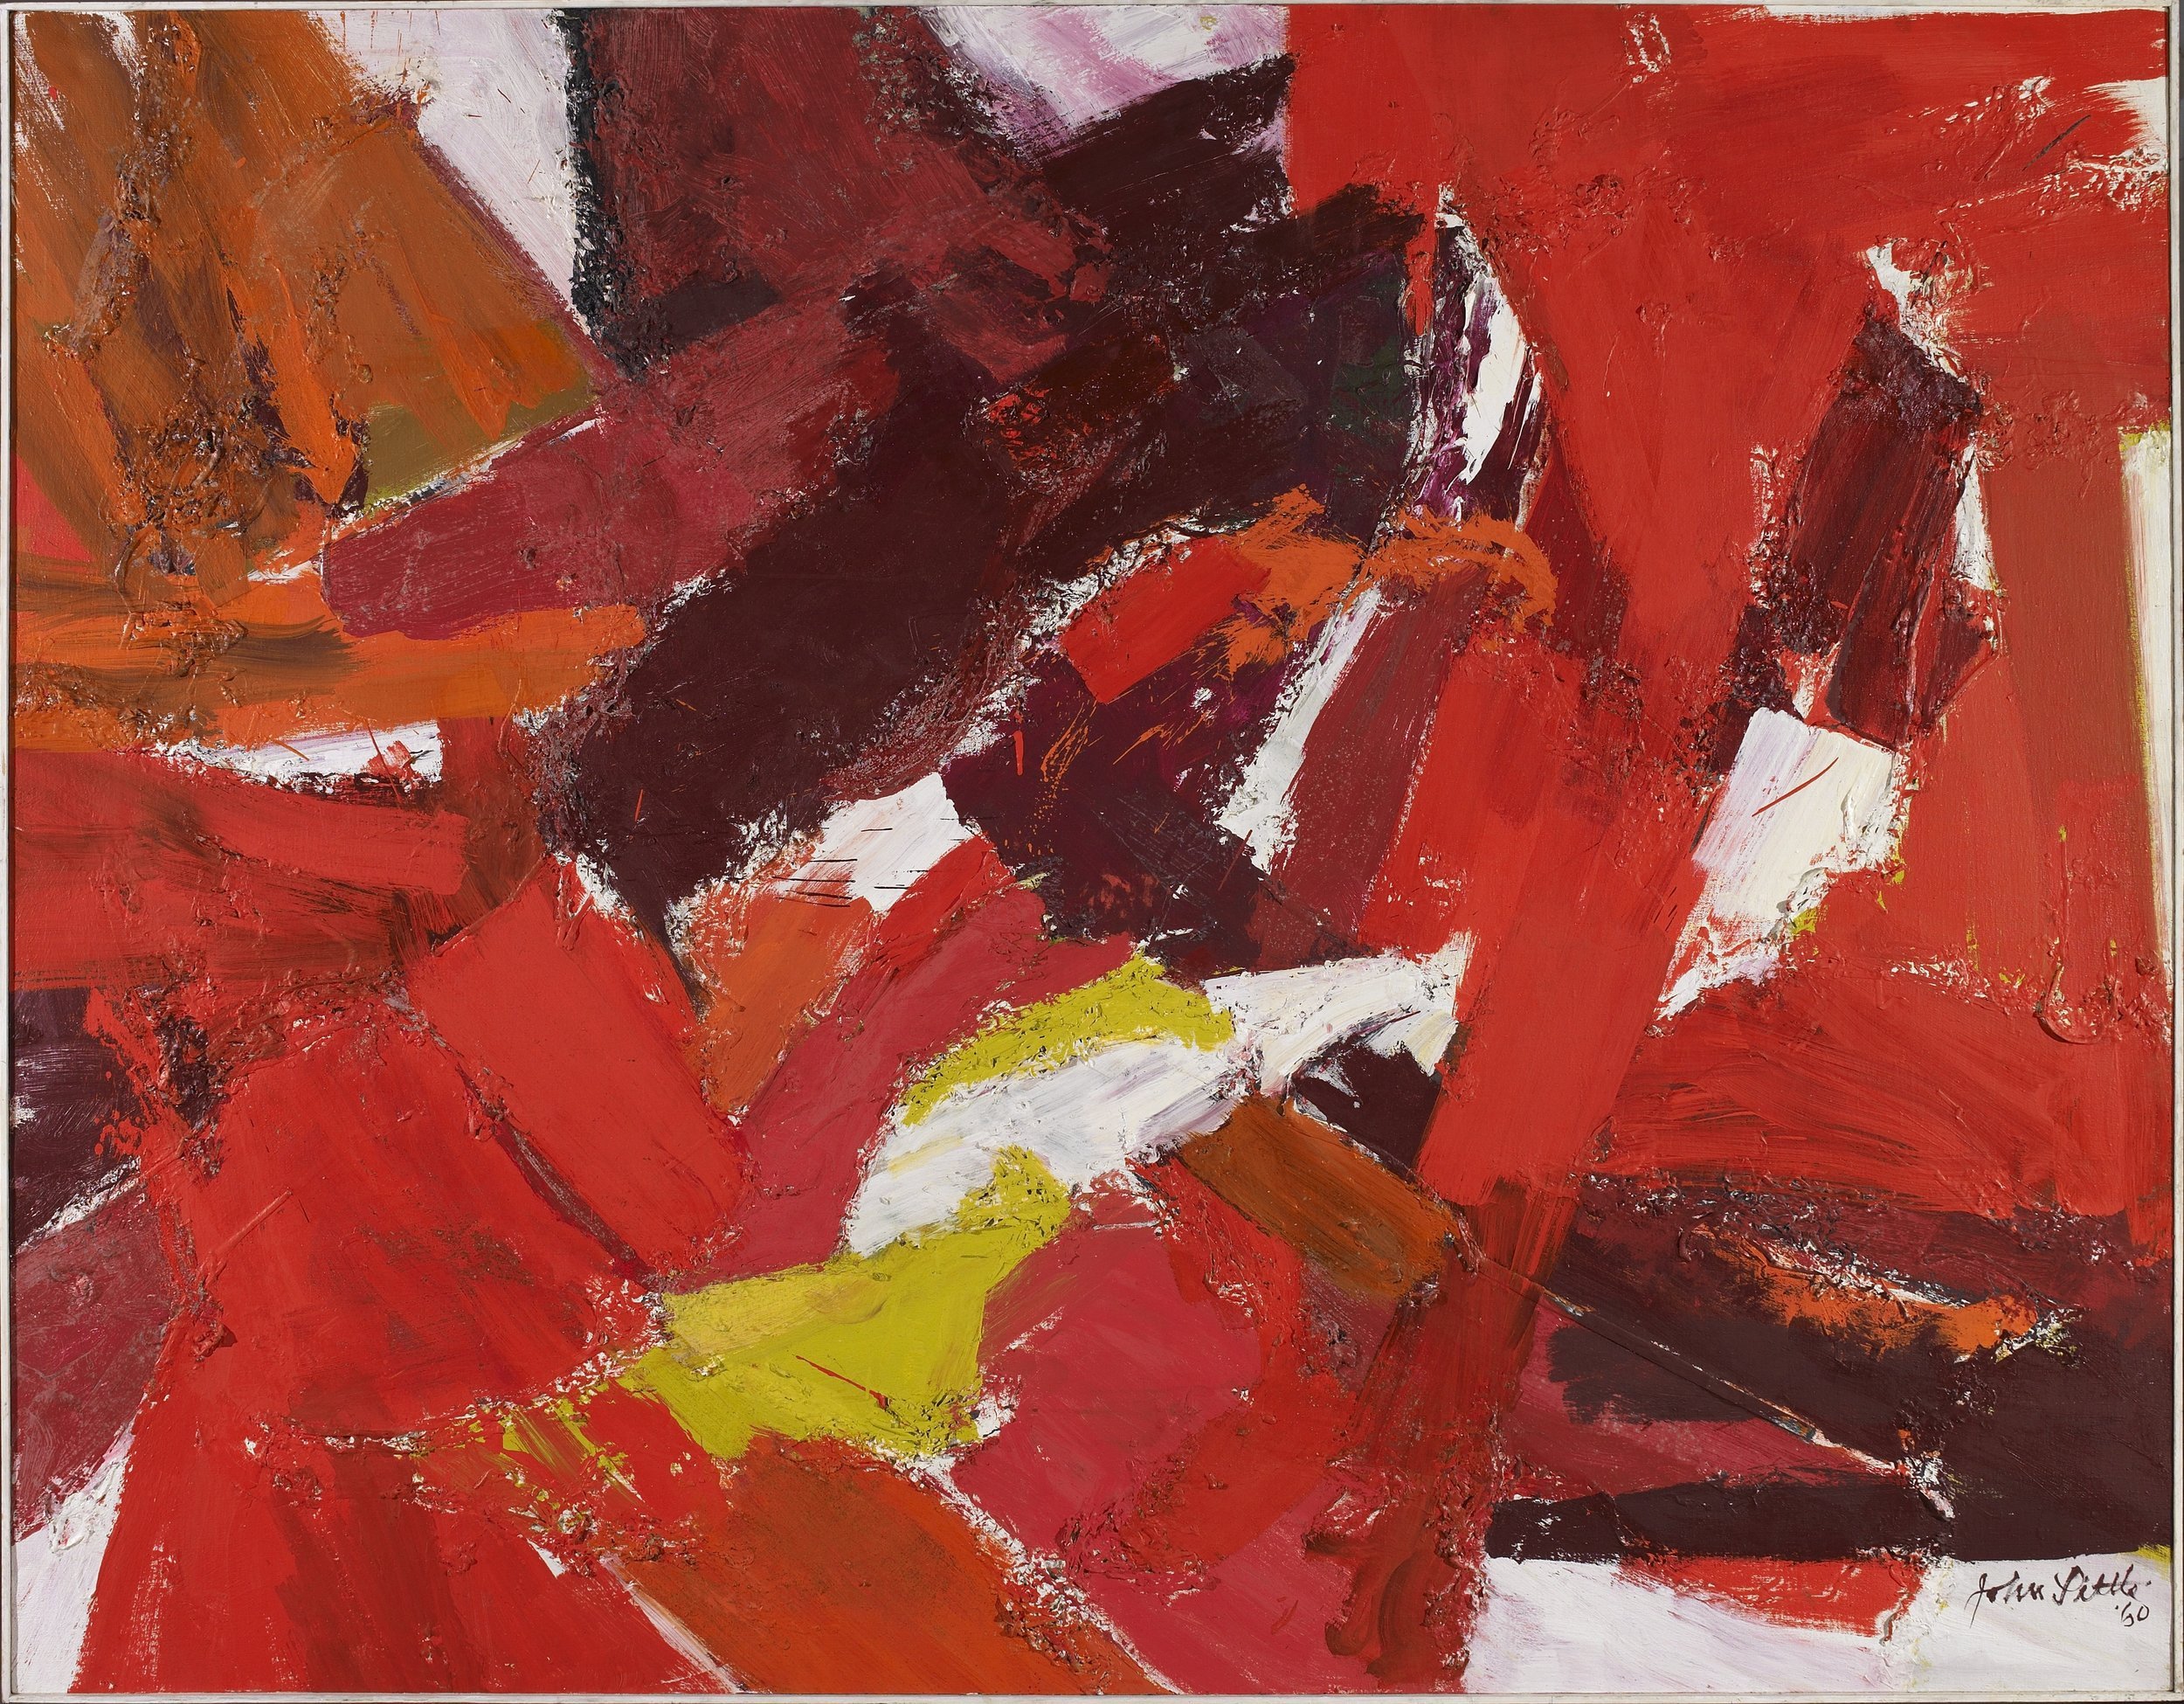 Tropic of Cancer II,  Oil on canvas, 1960, 48 x 76 inches